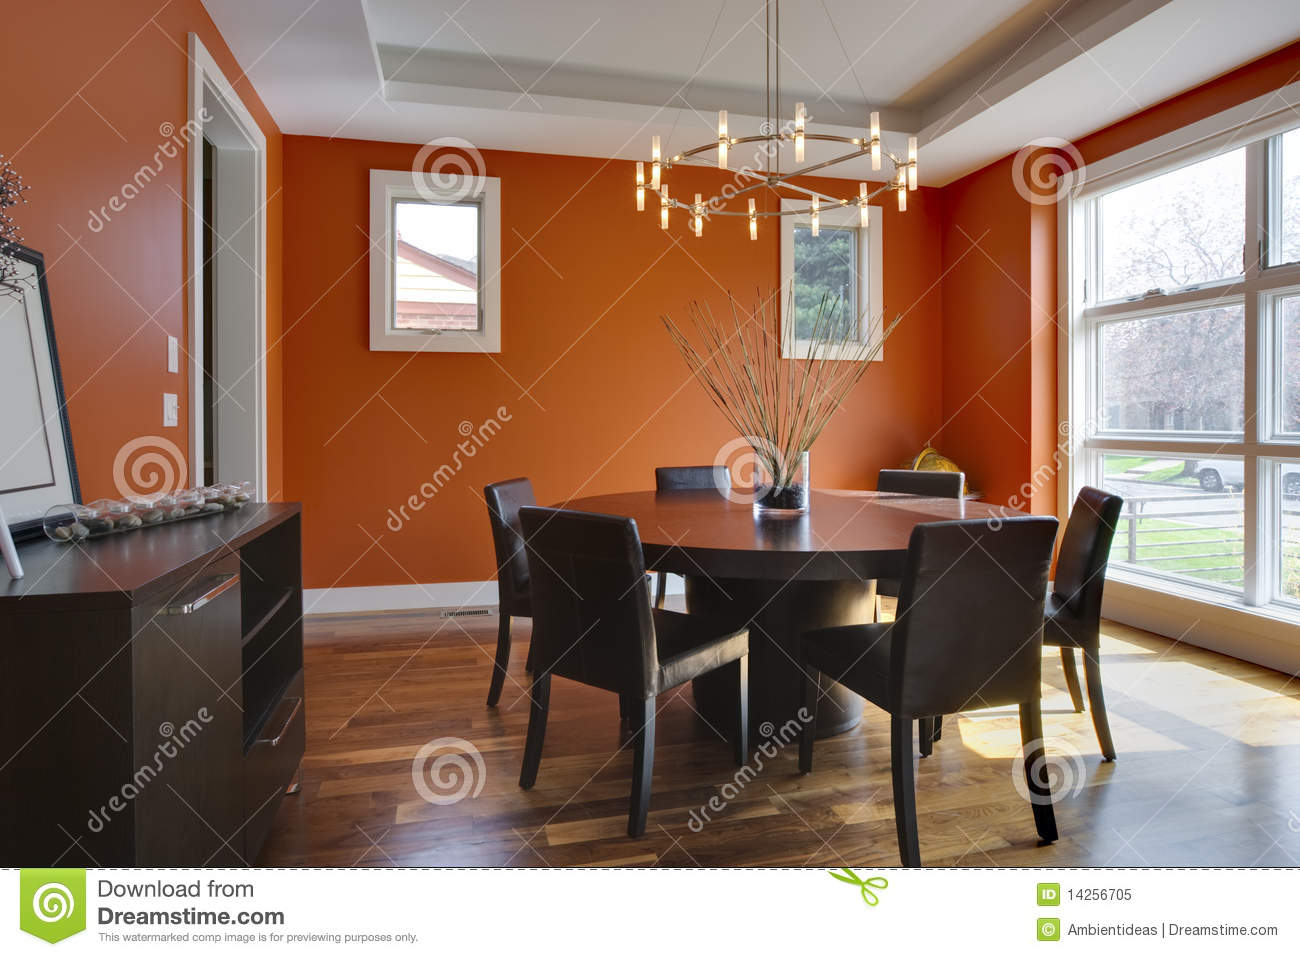 Luxury Dining Room With Orange Walls